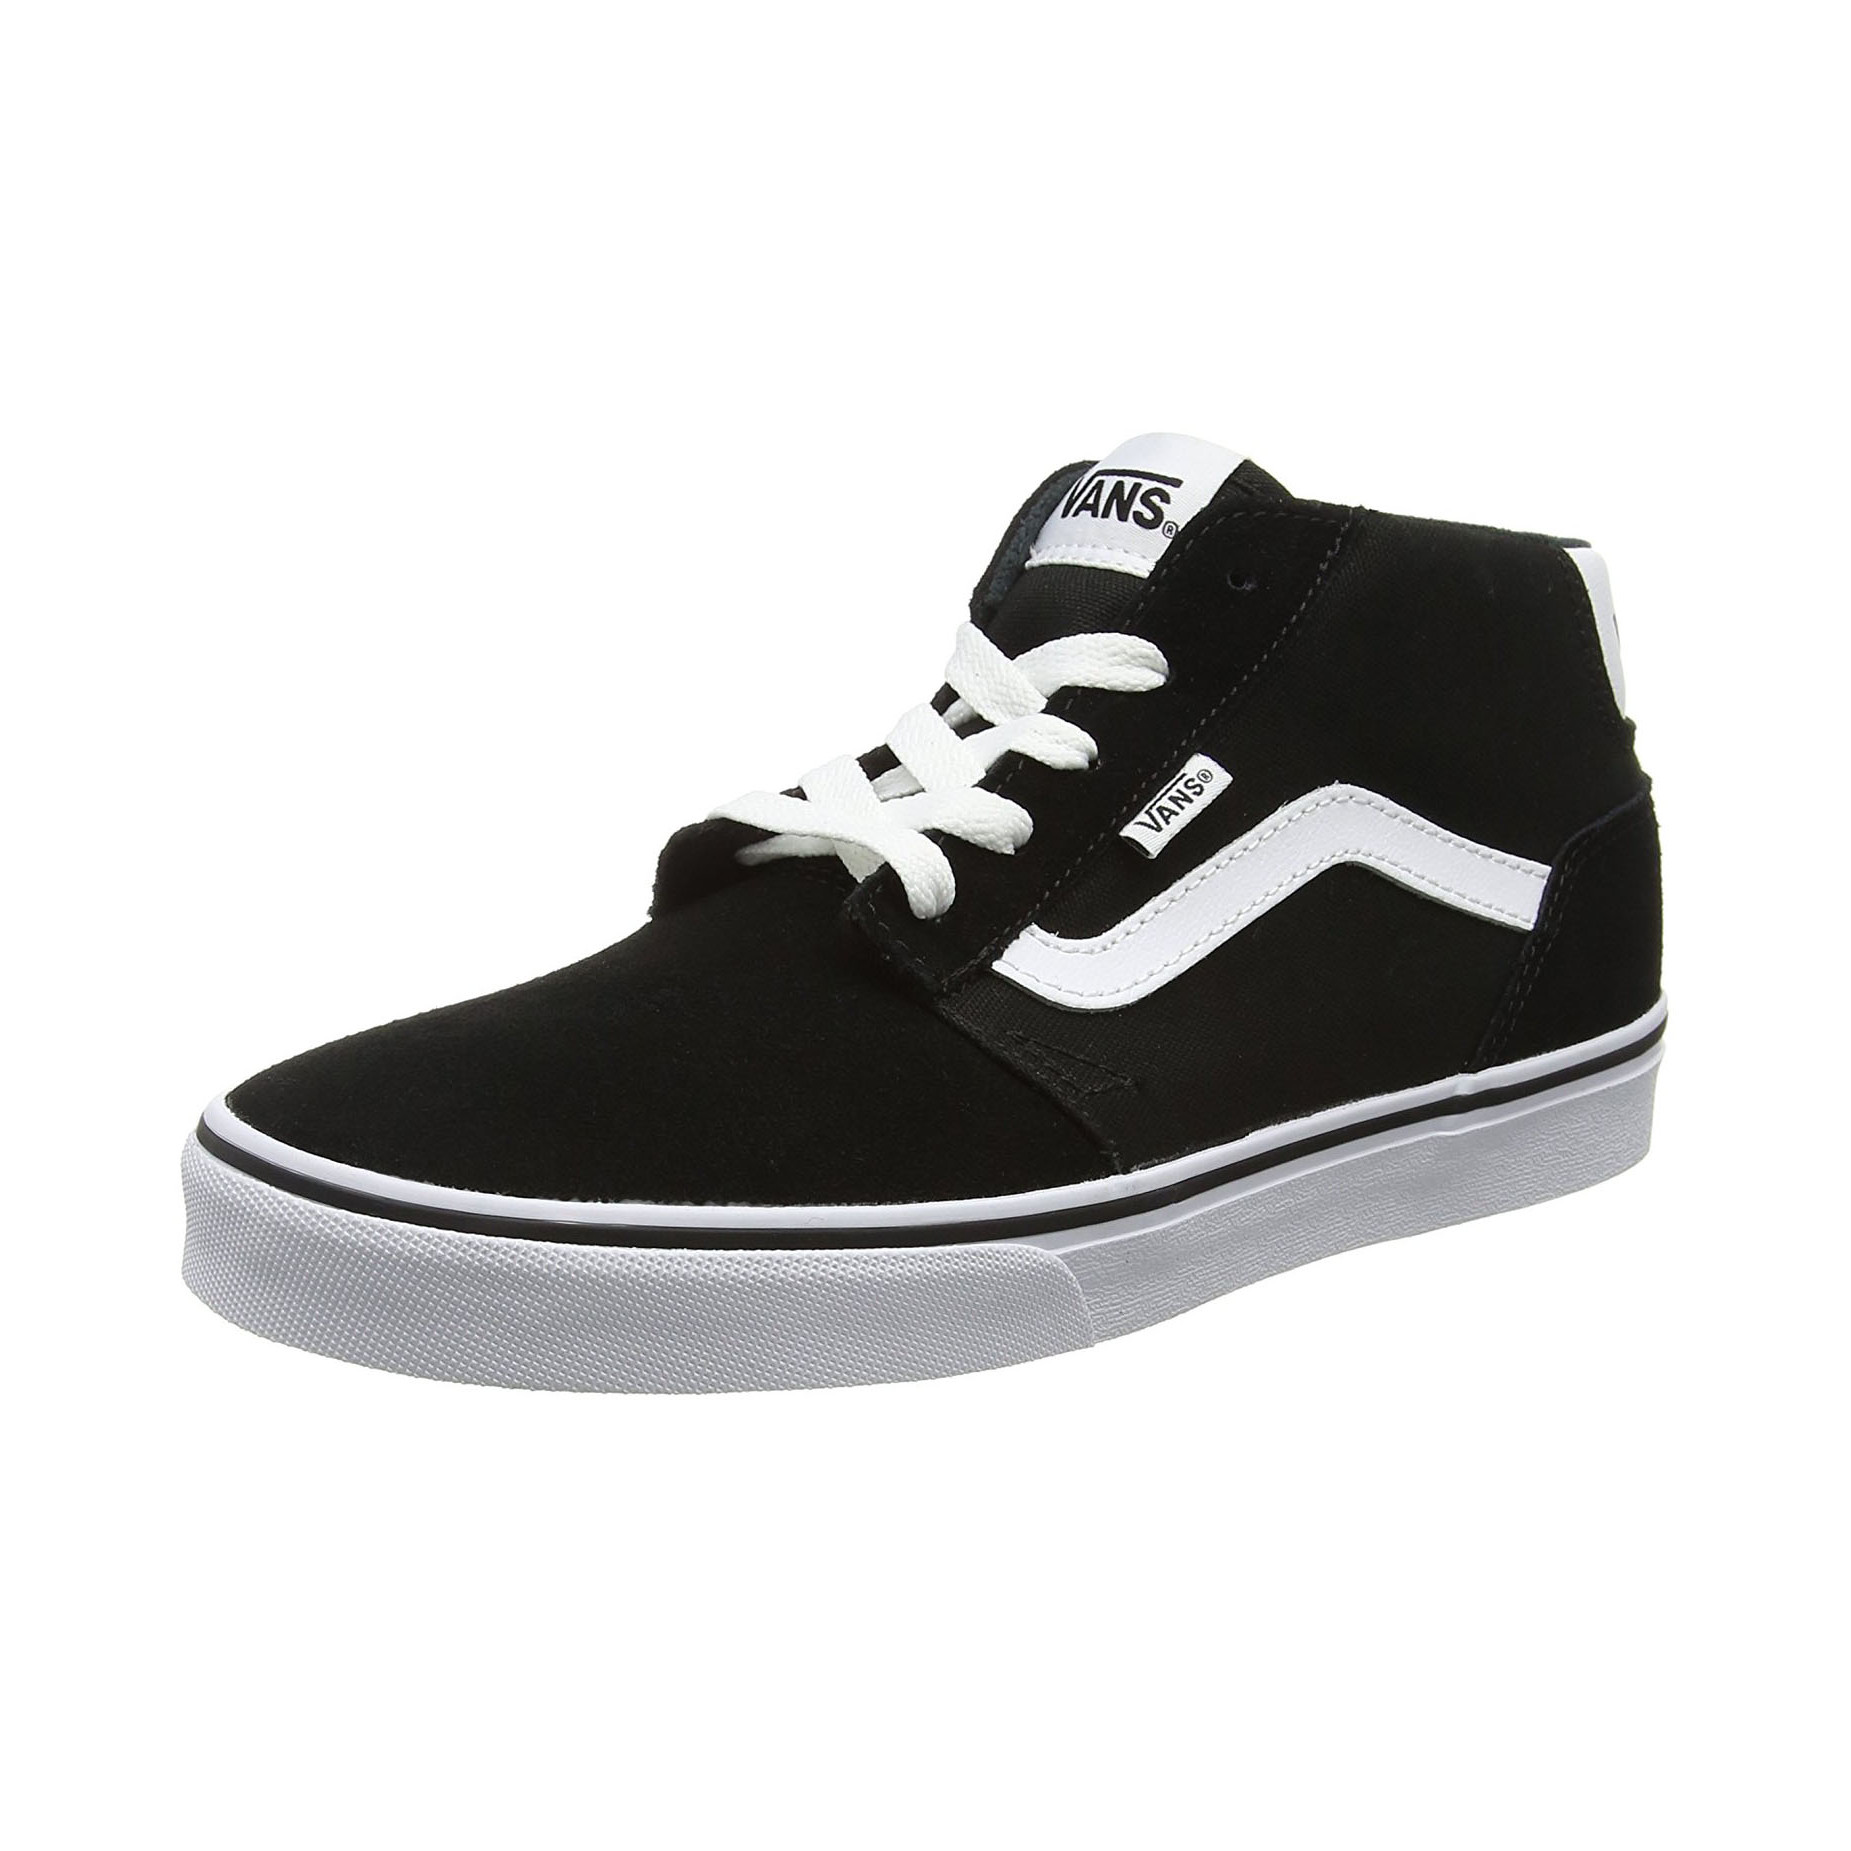 vans men 39 s chapman mid stripe suede canvas shoes trainers black white jean scene. Black Bedroom Furniture Sets. Home Design Ideas